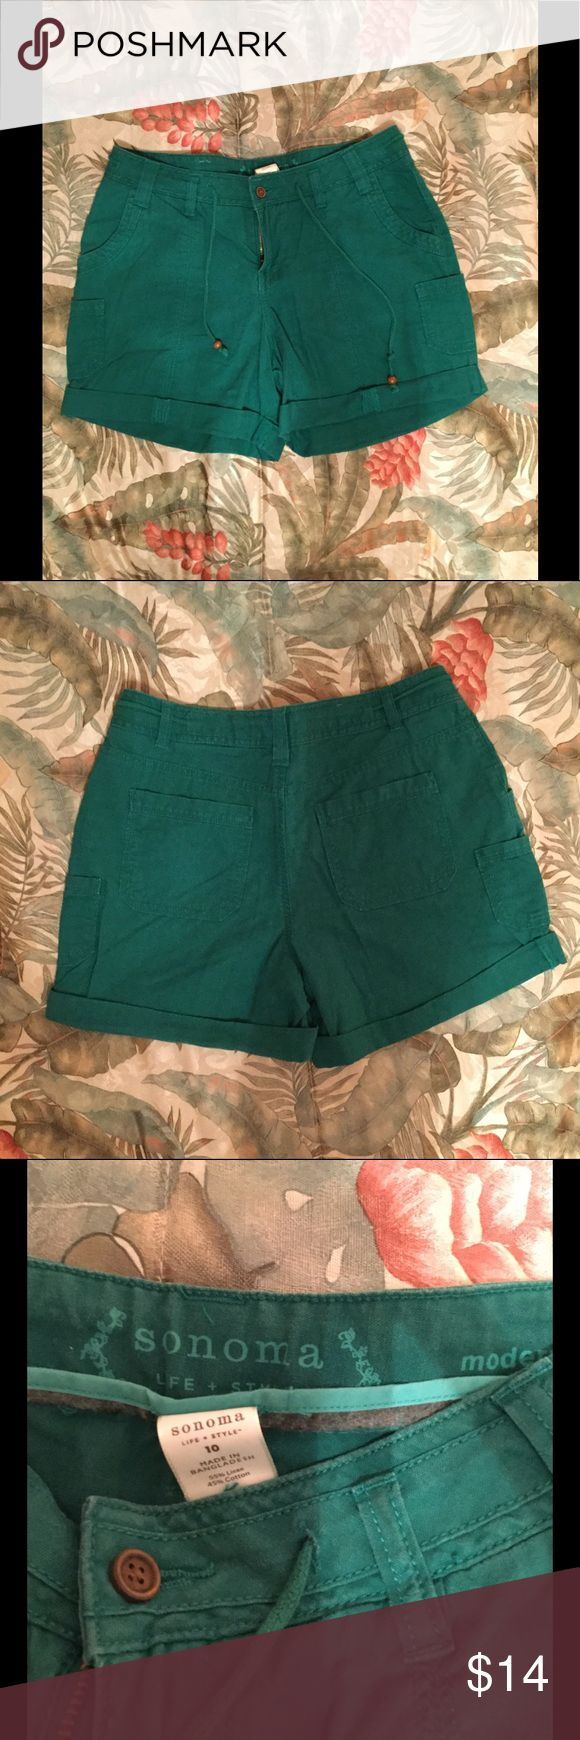 "Women's green Sonoma shorts size 10. Cargo style. Sonoma green cargo style women's shorts in size 10. 4 1/2""  inseam. Front button, zipper and tie closure. Belt loops. Cuffed at the bottom. 55% linen, 45% cotton. Machine wash/tumble dry. Pockets in front, back and sides. No trades please. Thanks for visiting my closet! Sonoma Shorts"